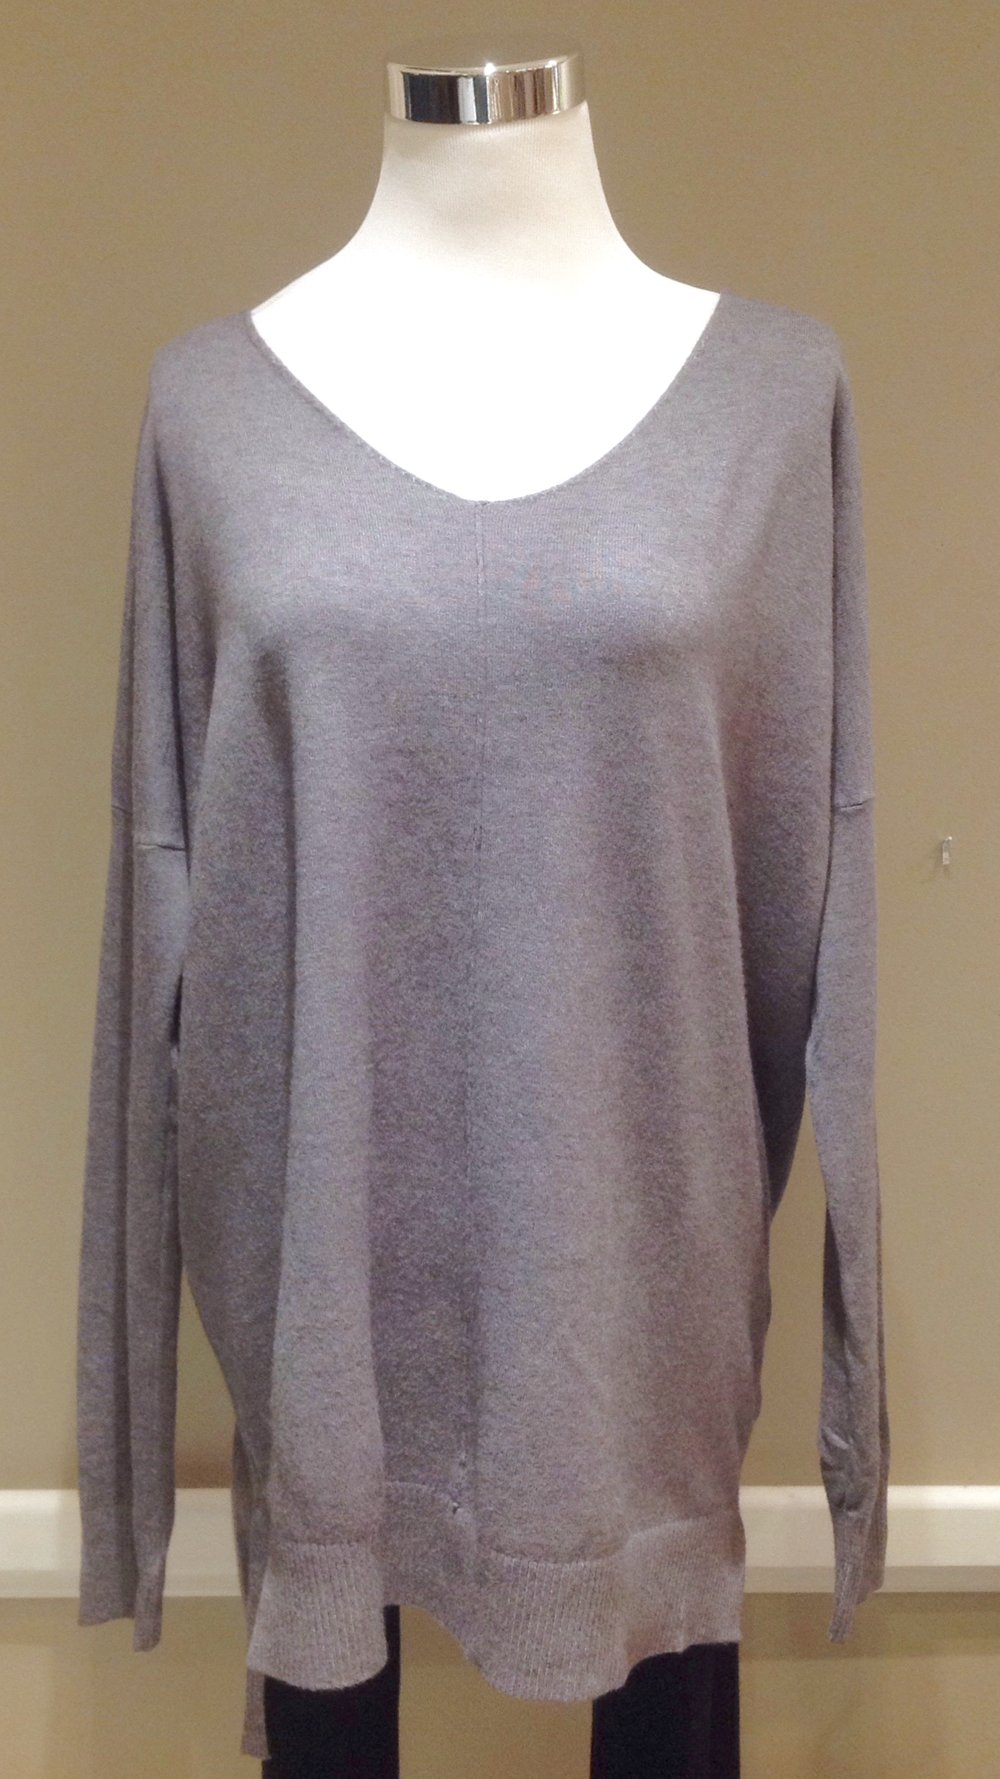 Ultra soft v-neck sweater with high-low hem in charcoal, $40